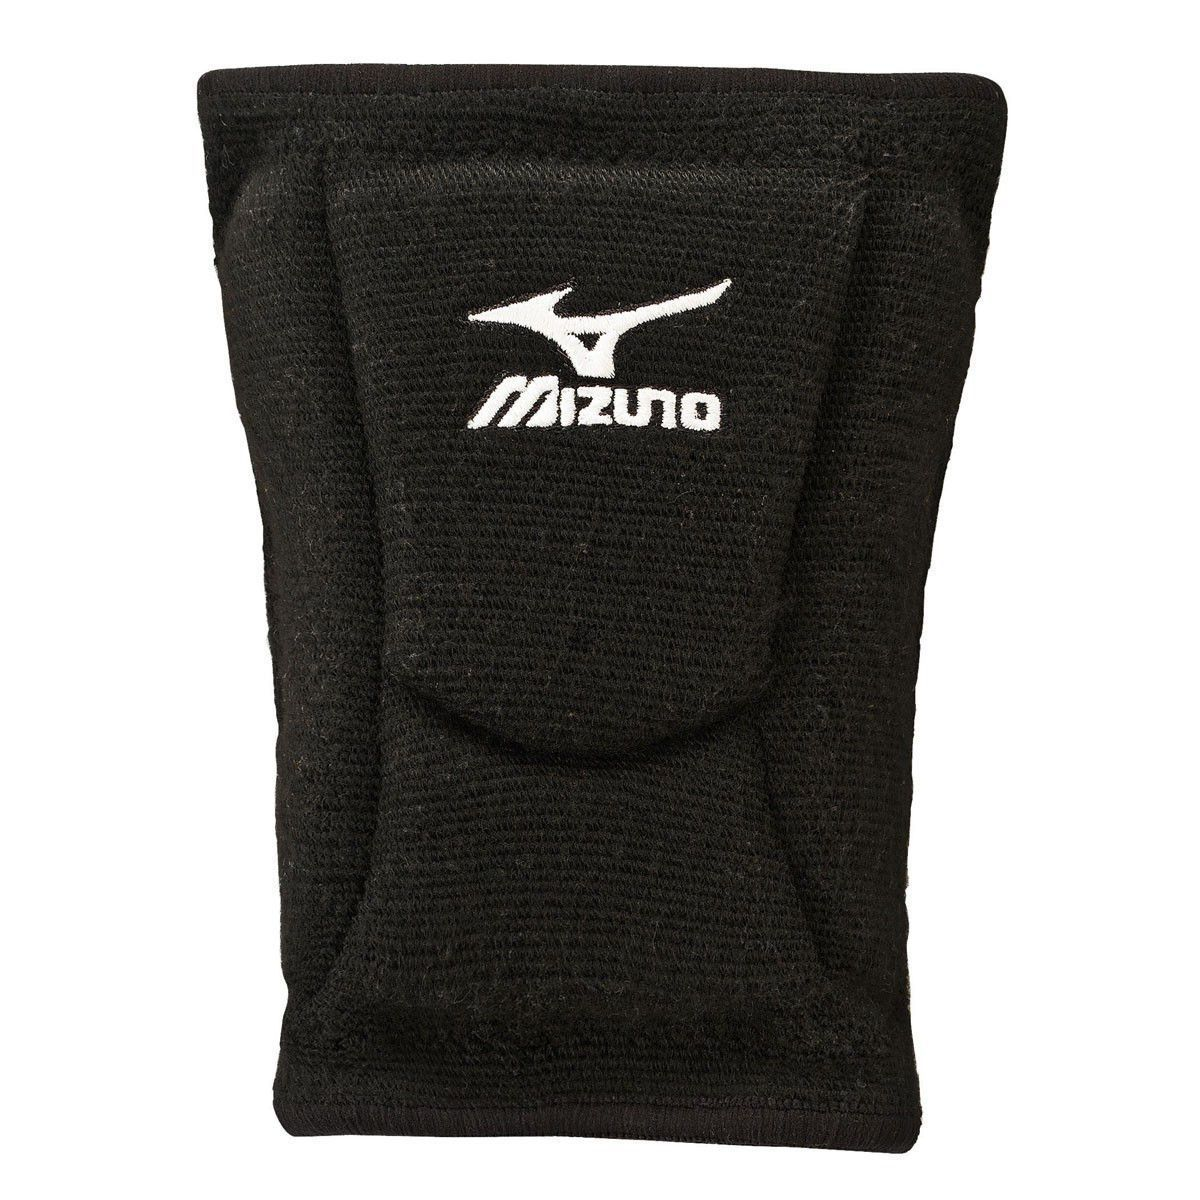 Mizuno Lr6 Volleyball Knee Pads One Pair White Or Black Small Medium Or Lg Volleyball Knee Pads Mizuno Volleyball Knee Pads